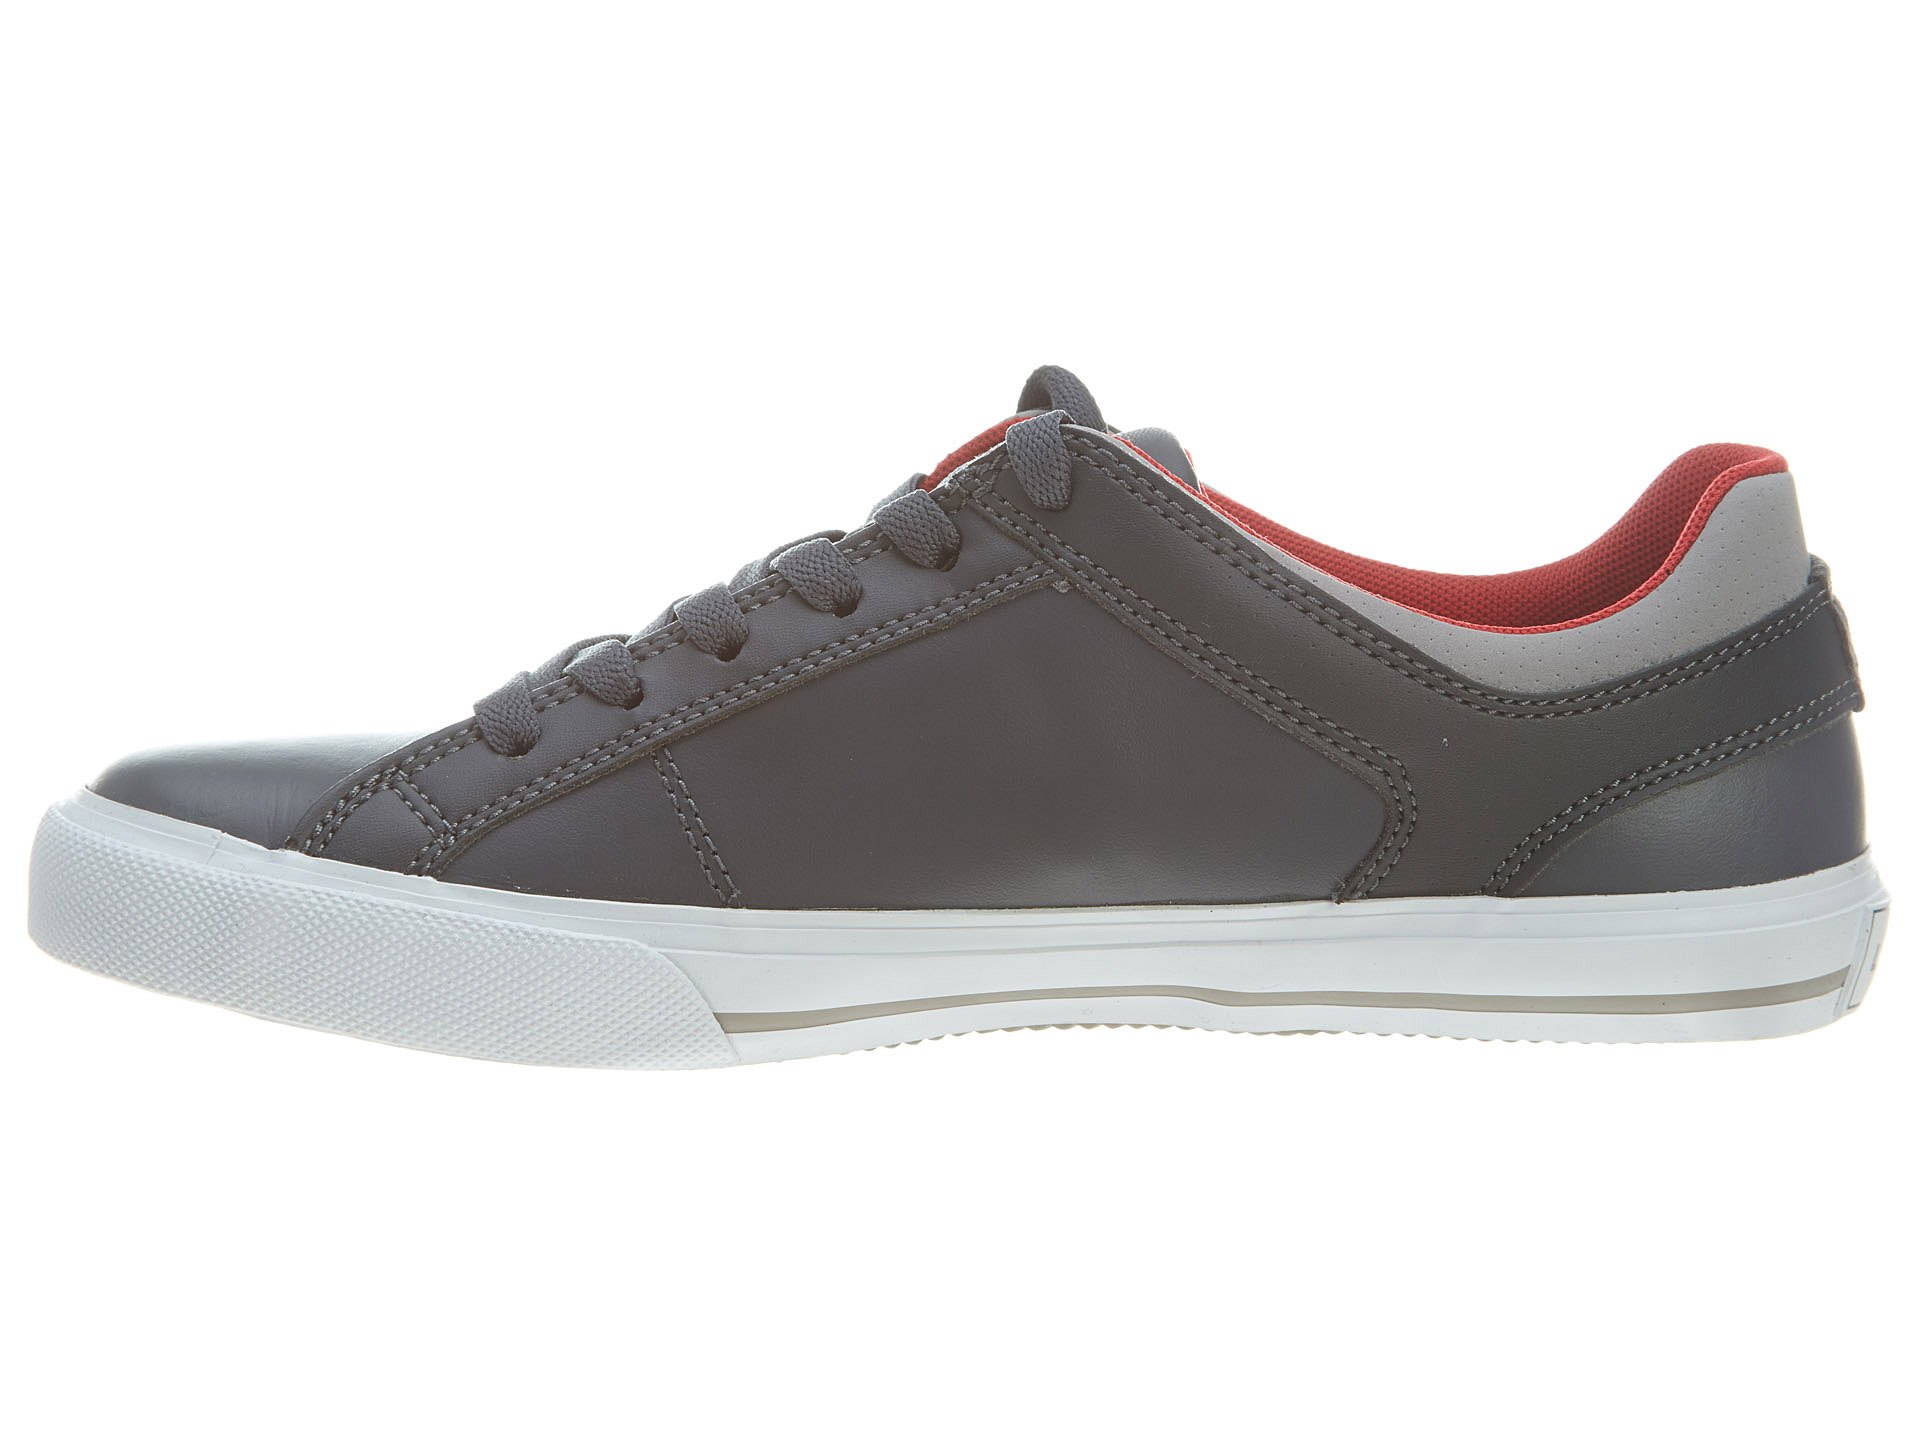 Lacoste Marline Pmr Us Lth/Syn Mens  Style # 7-27Spm1027